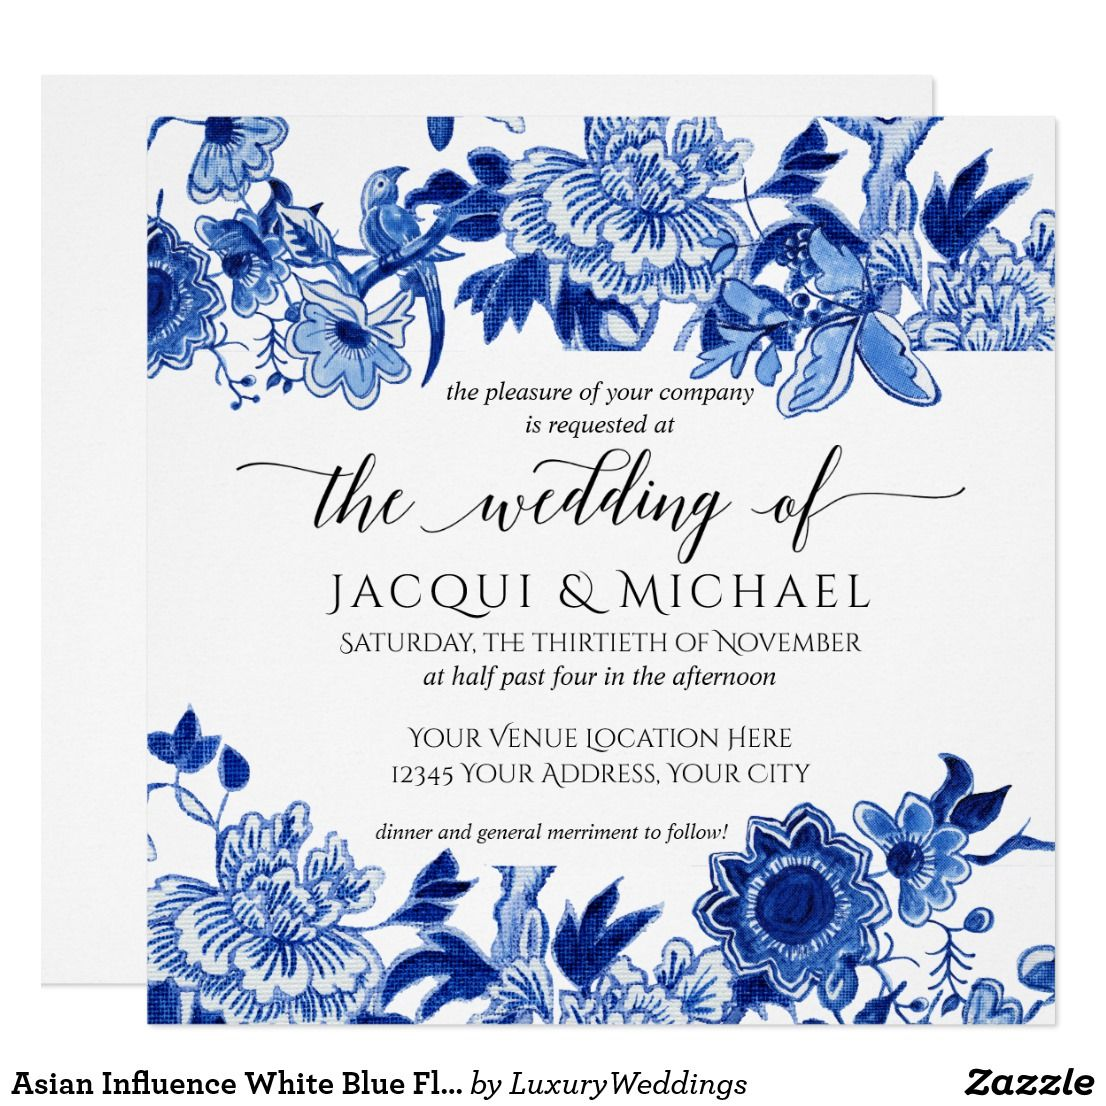 Asian Influence White Blue Floral Wedding Artwork